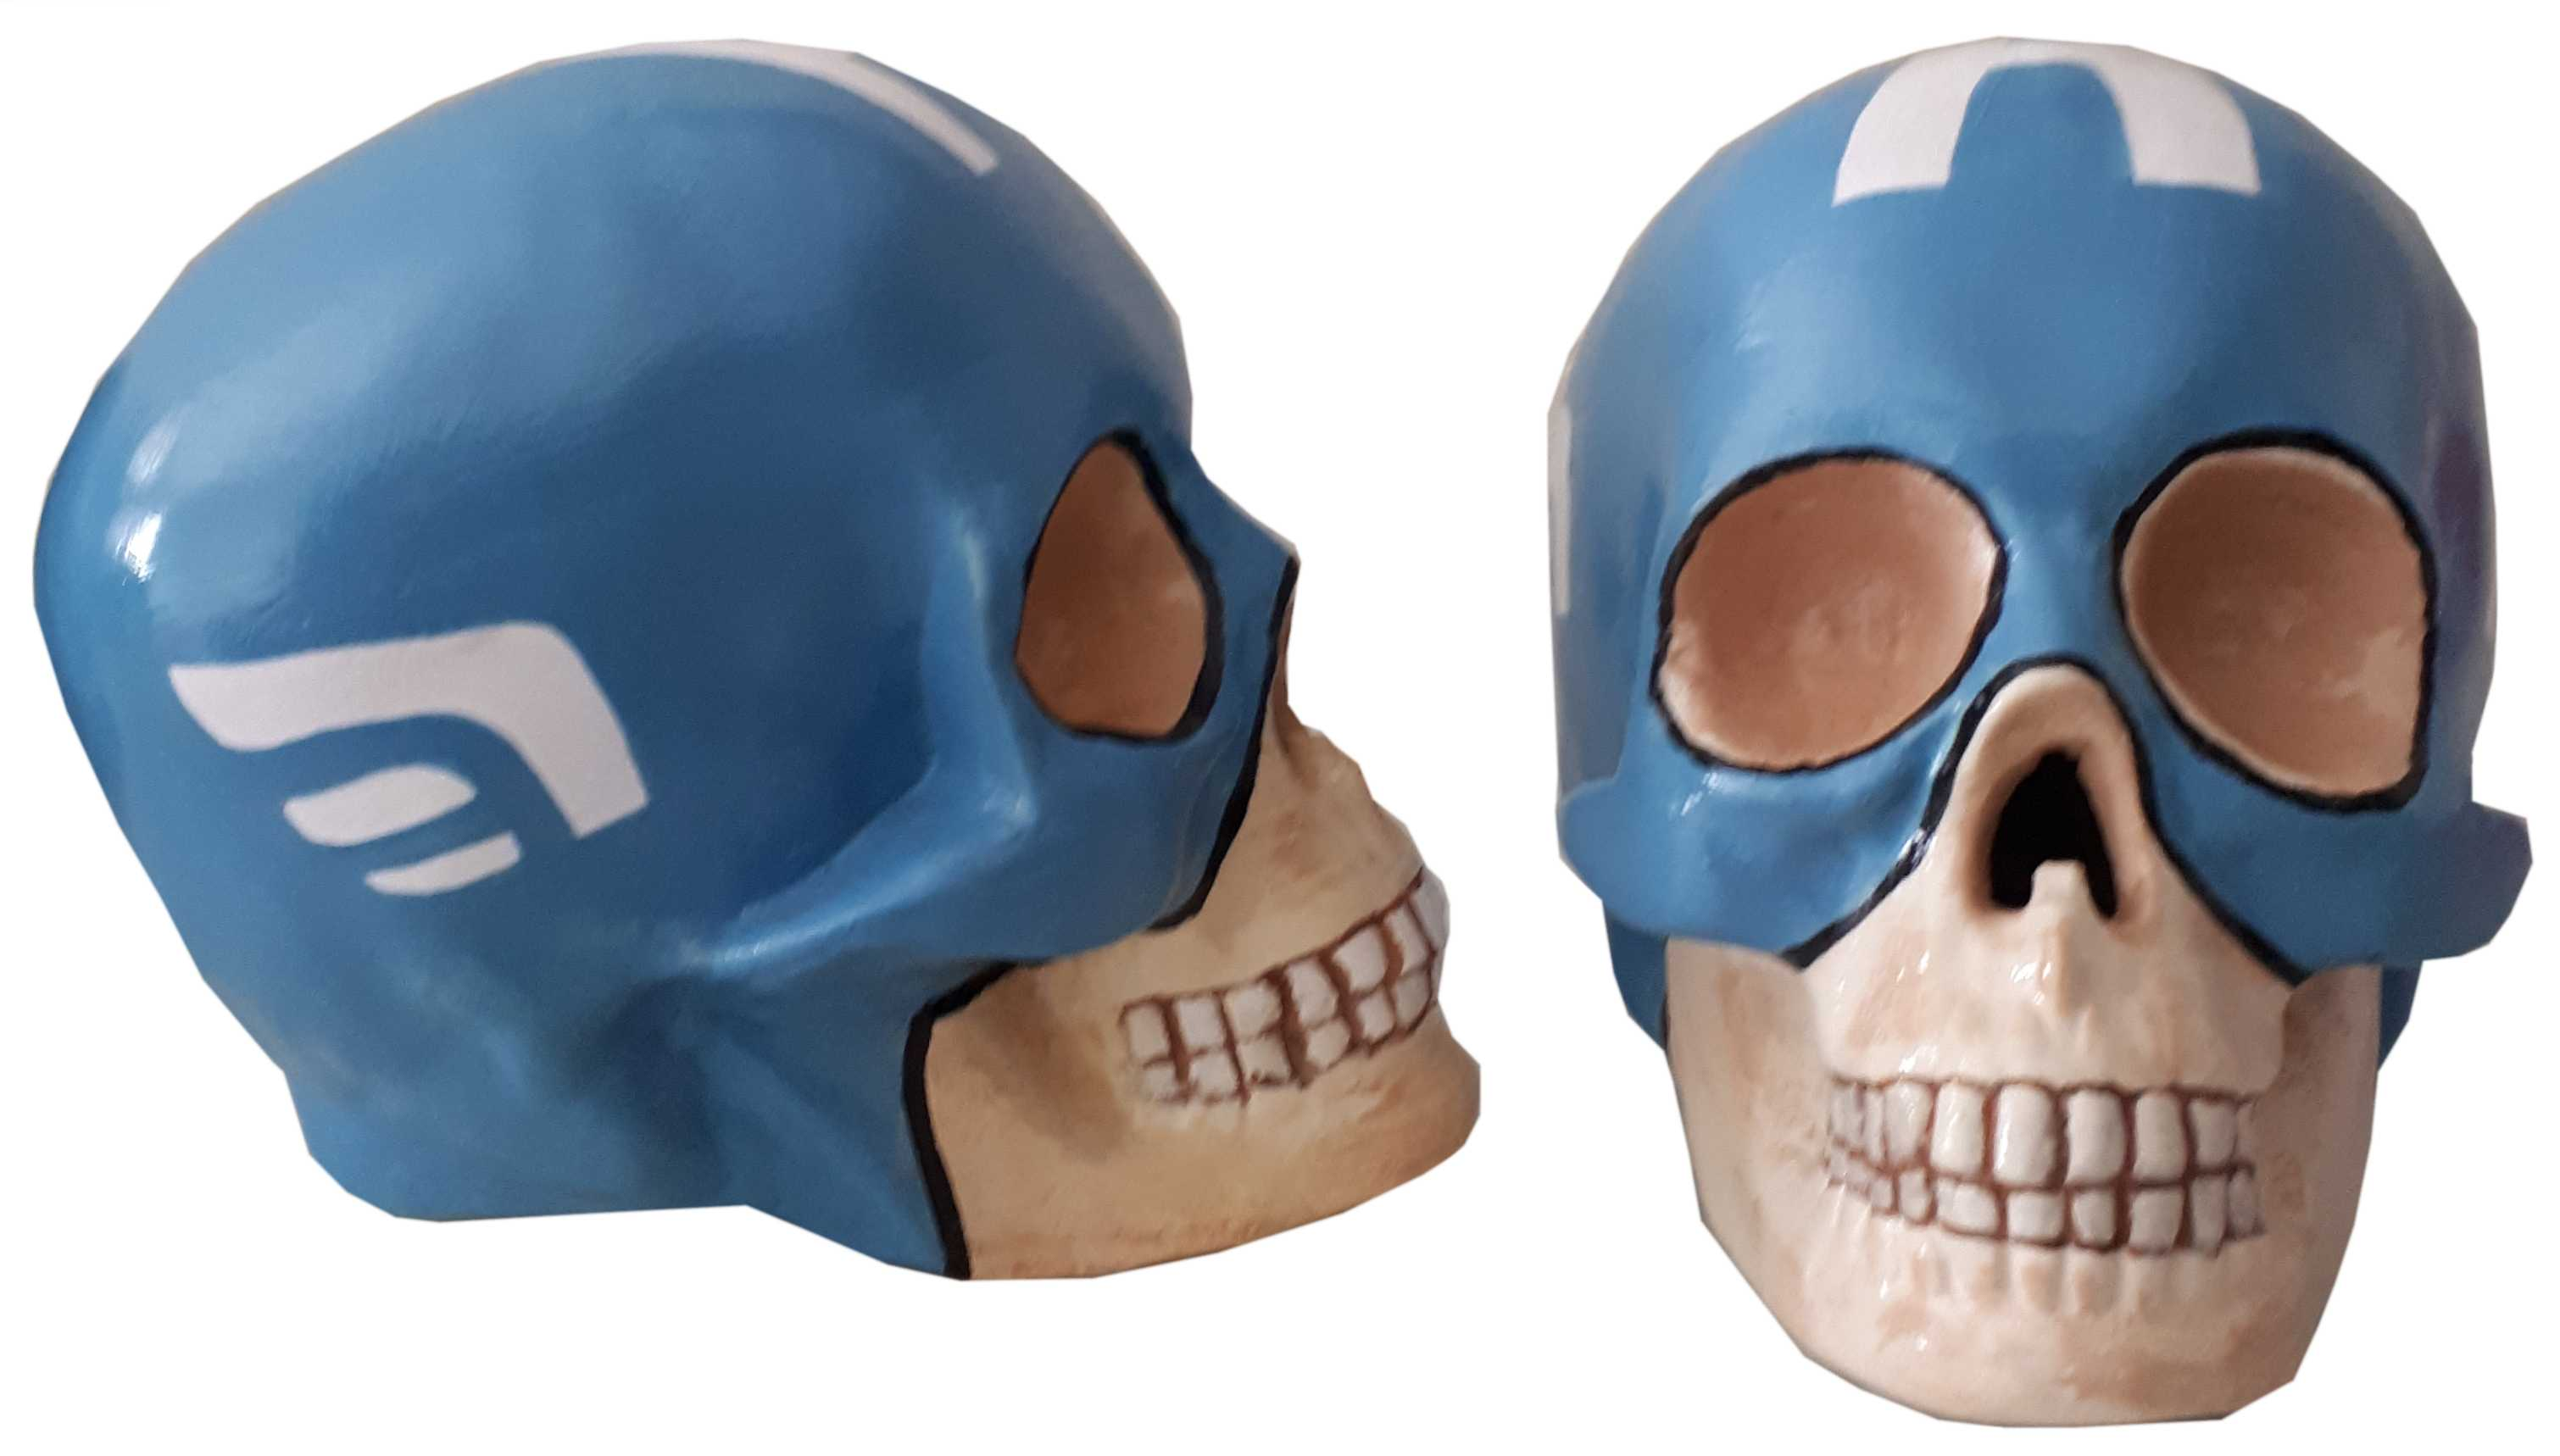 captainskull